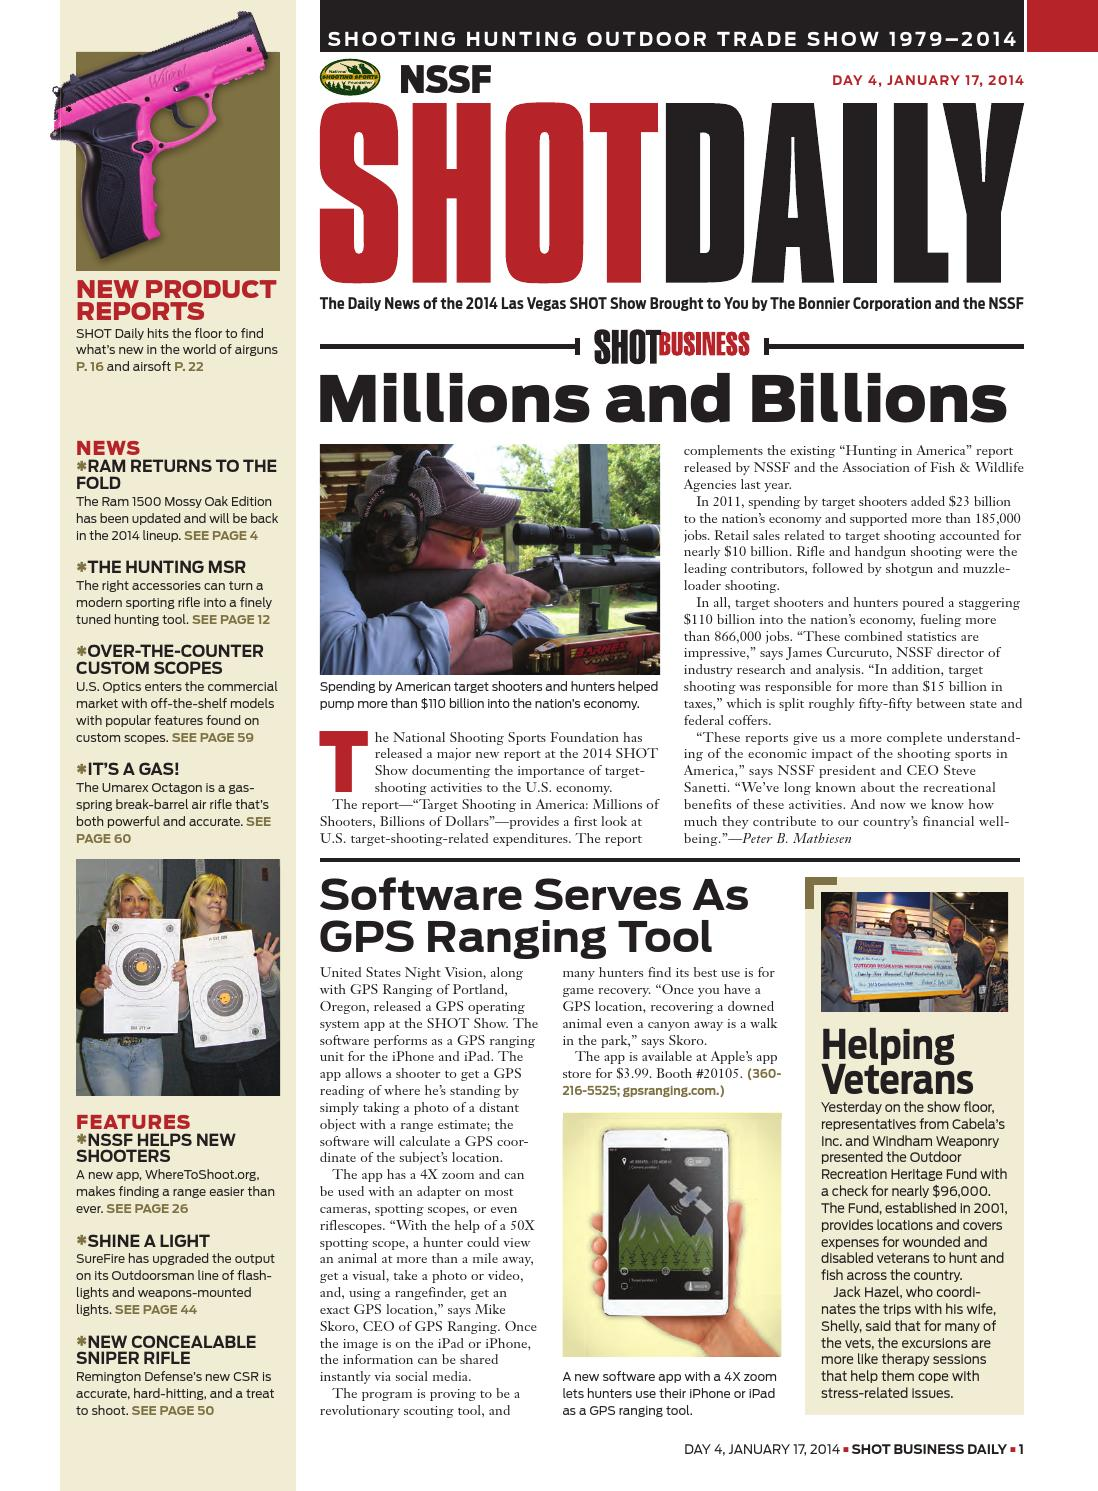 SHOT Daily 4 2014 by SHOT Business - issuu